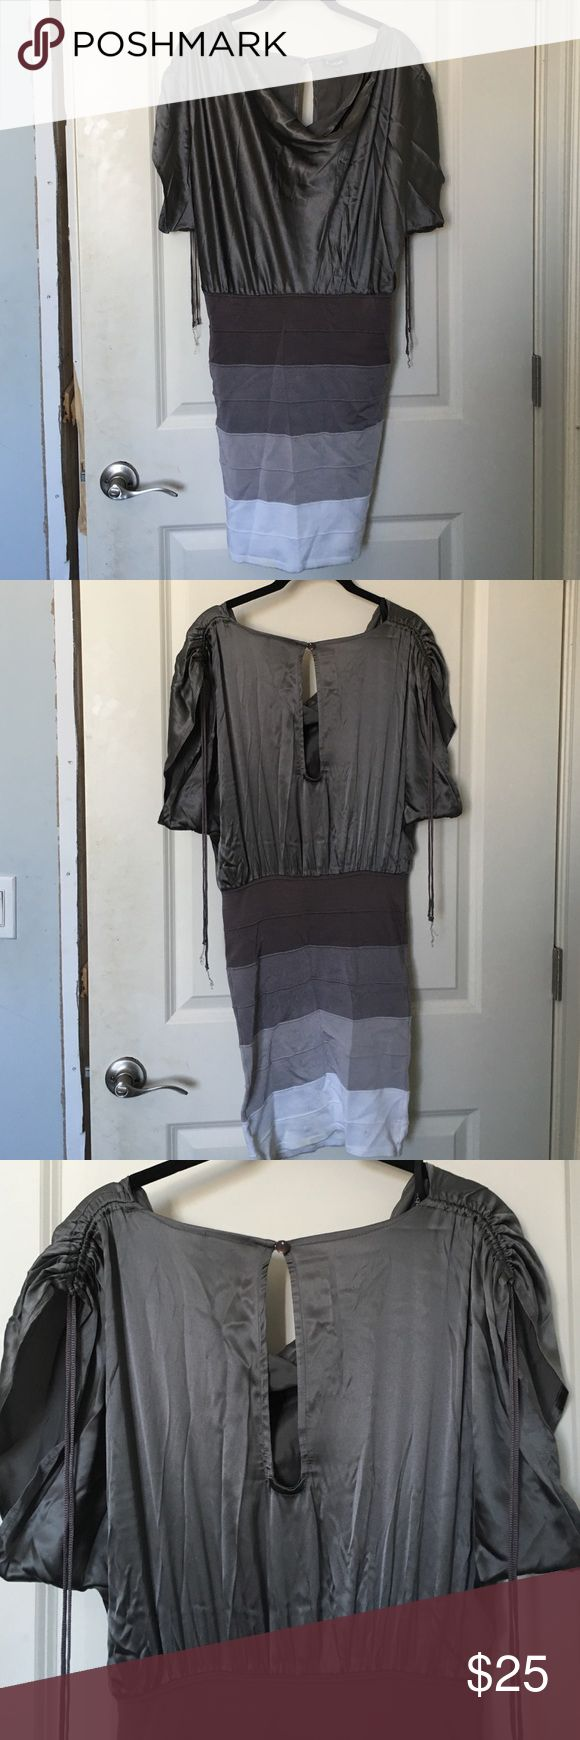 bebe Silk Silver Ombré Bodycon (Kardashian) Bebe Kardashian dress--- Silver with variations of gray for gradient-slendering effect, bandage style. Bodycon skirt rises to a high waist, with a draped silk top and gathered tied at the shoulders. Tried on at store but never worn. Will take best offer bebe Dresses Mini